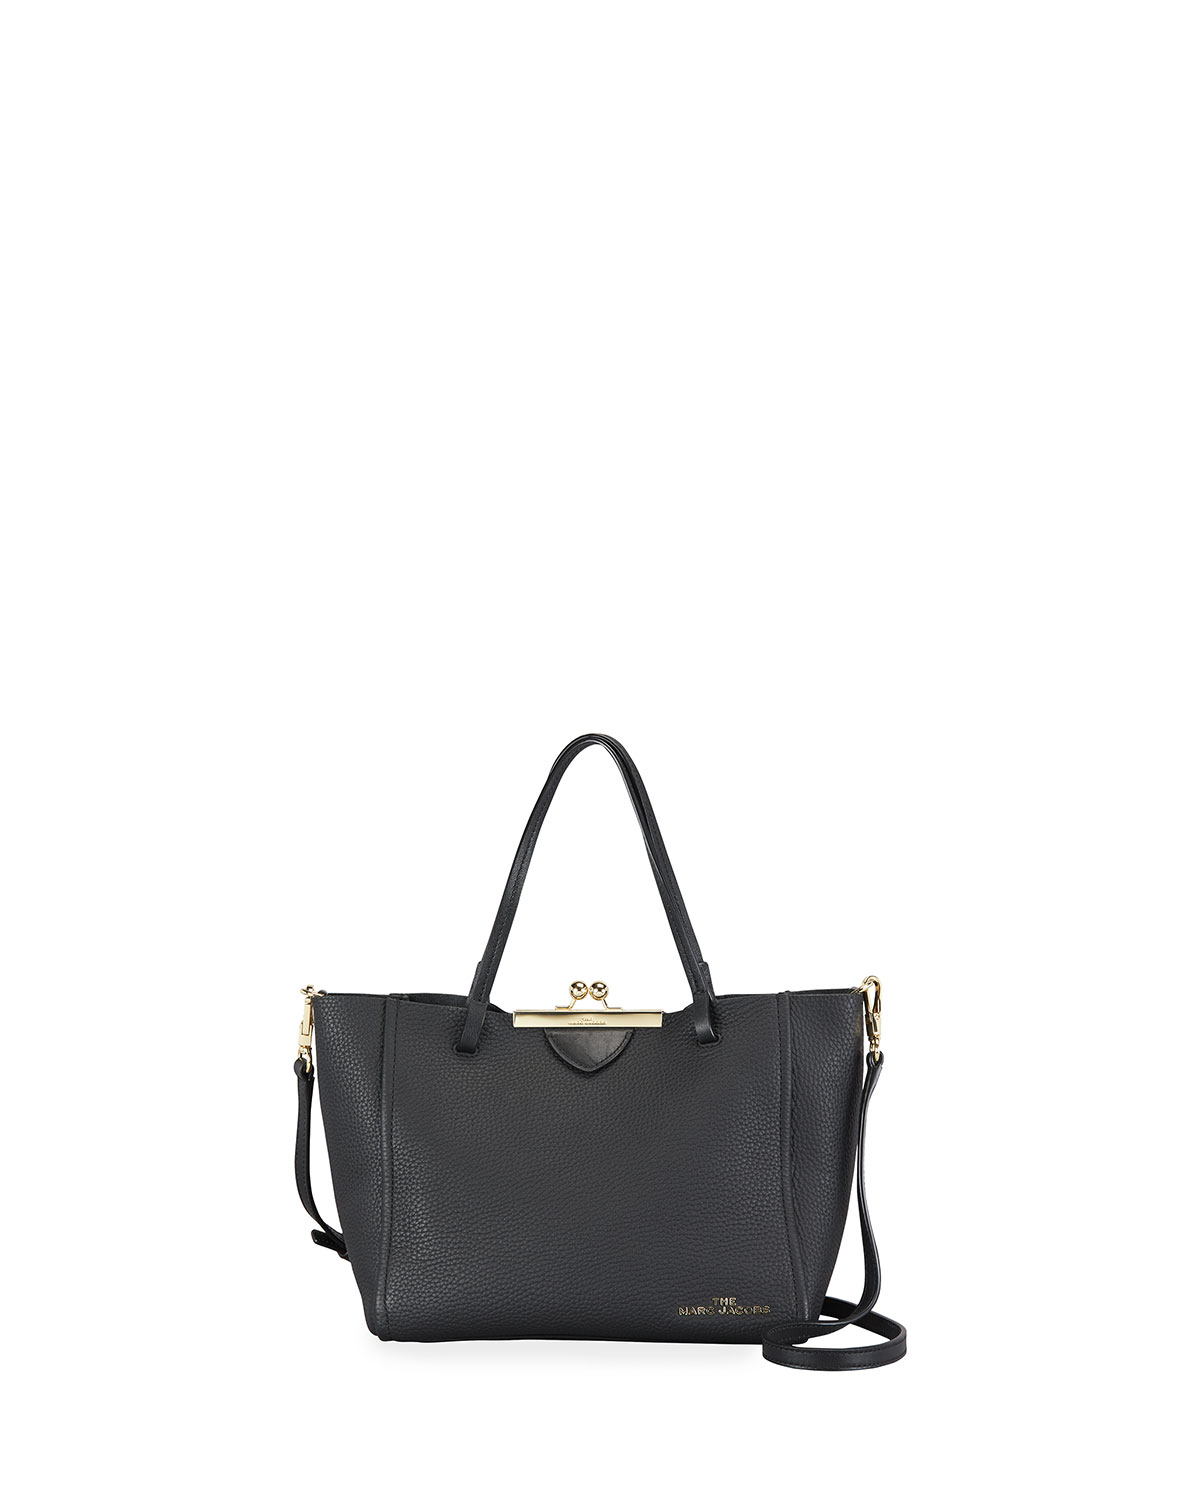 The Marc Jacobs The Kiss Lock Mini Tote Bag